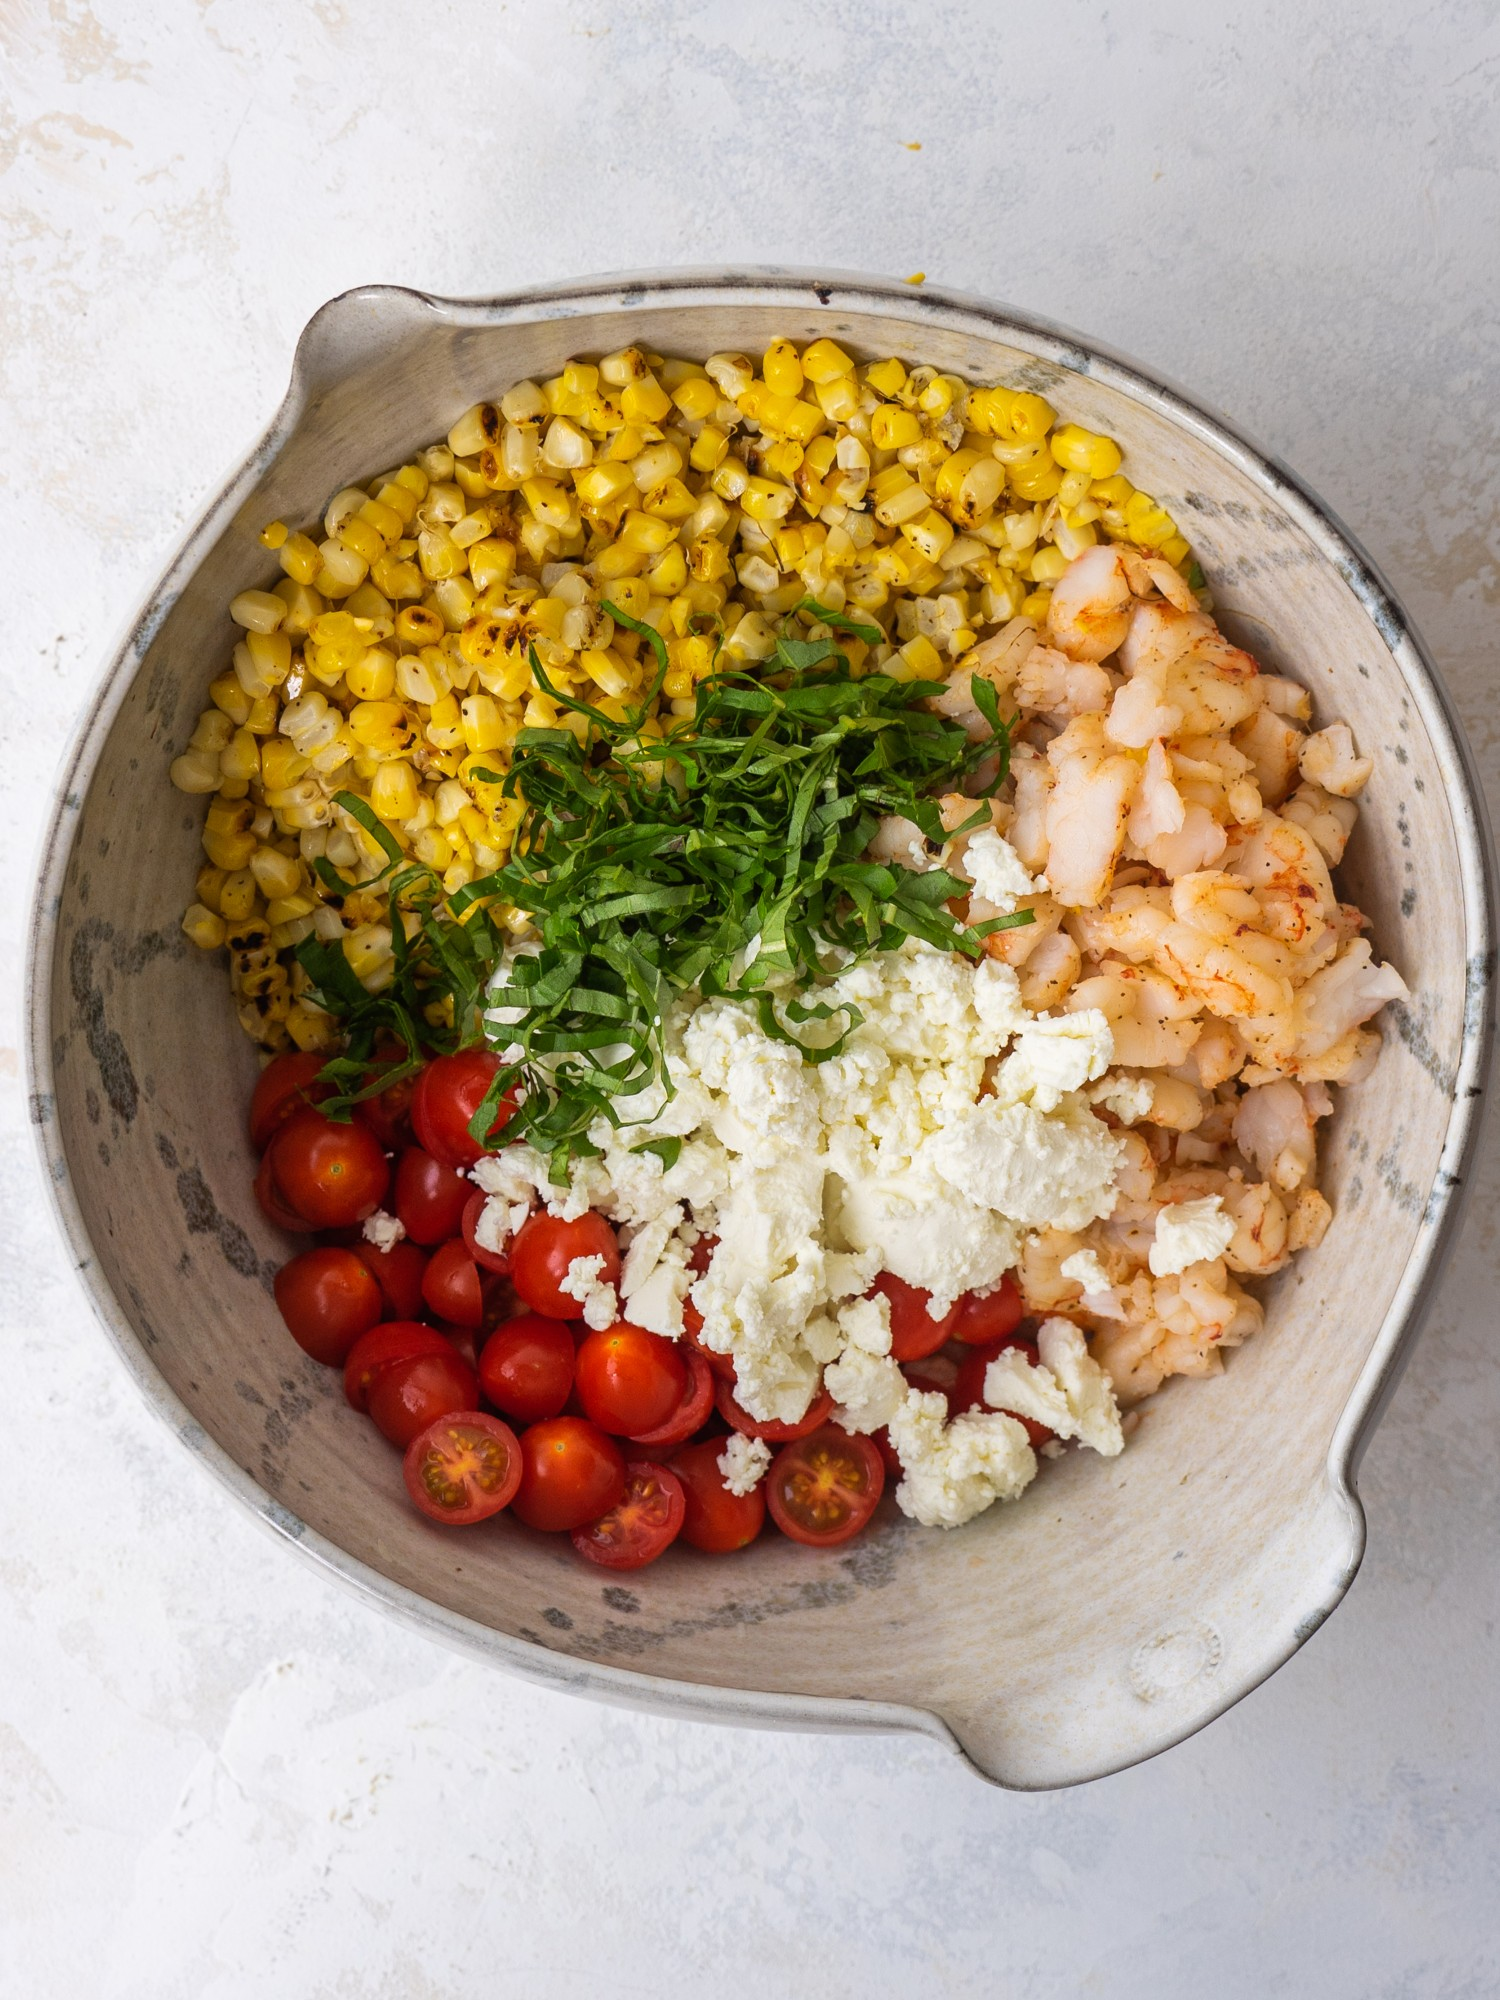 Above view of ingredients for creamy grilled shrimp salad in a mixing bowl